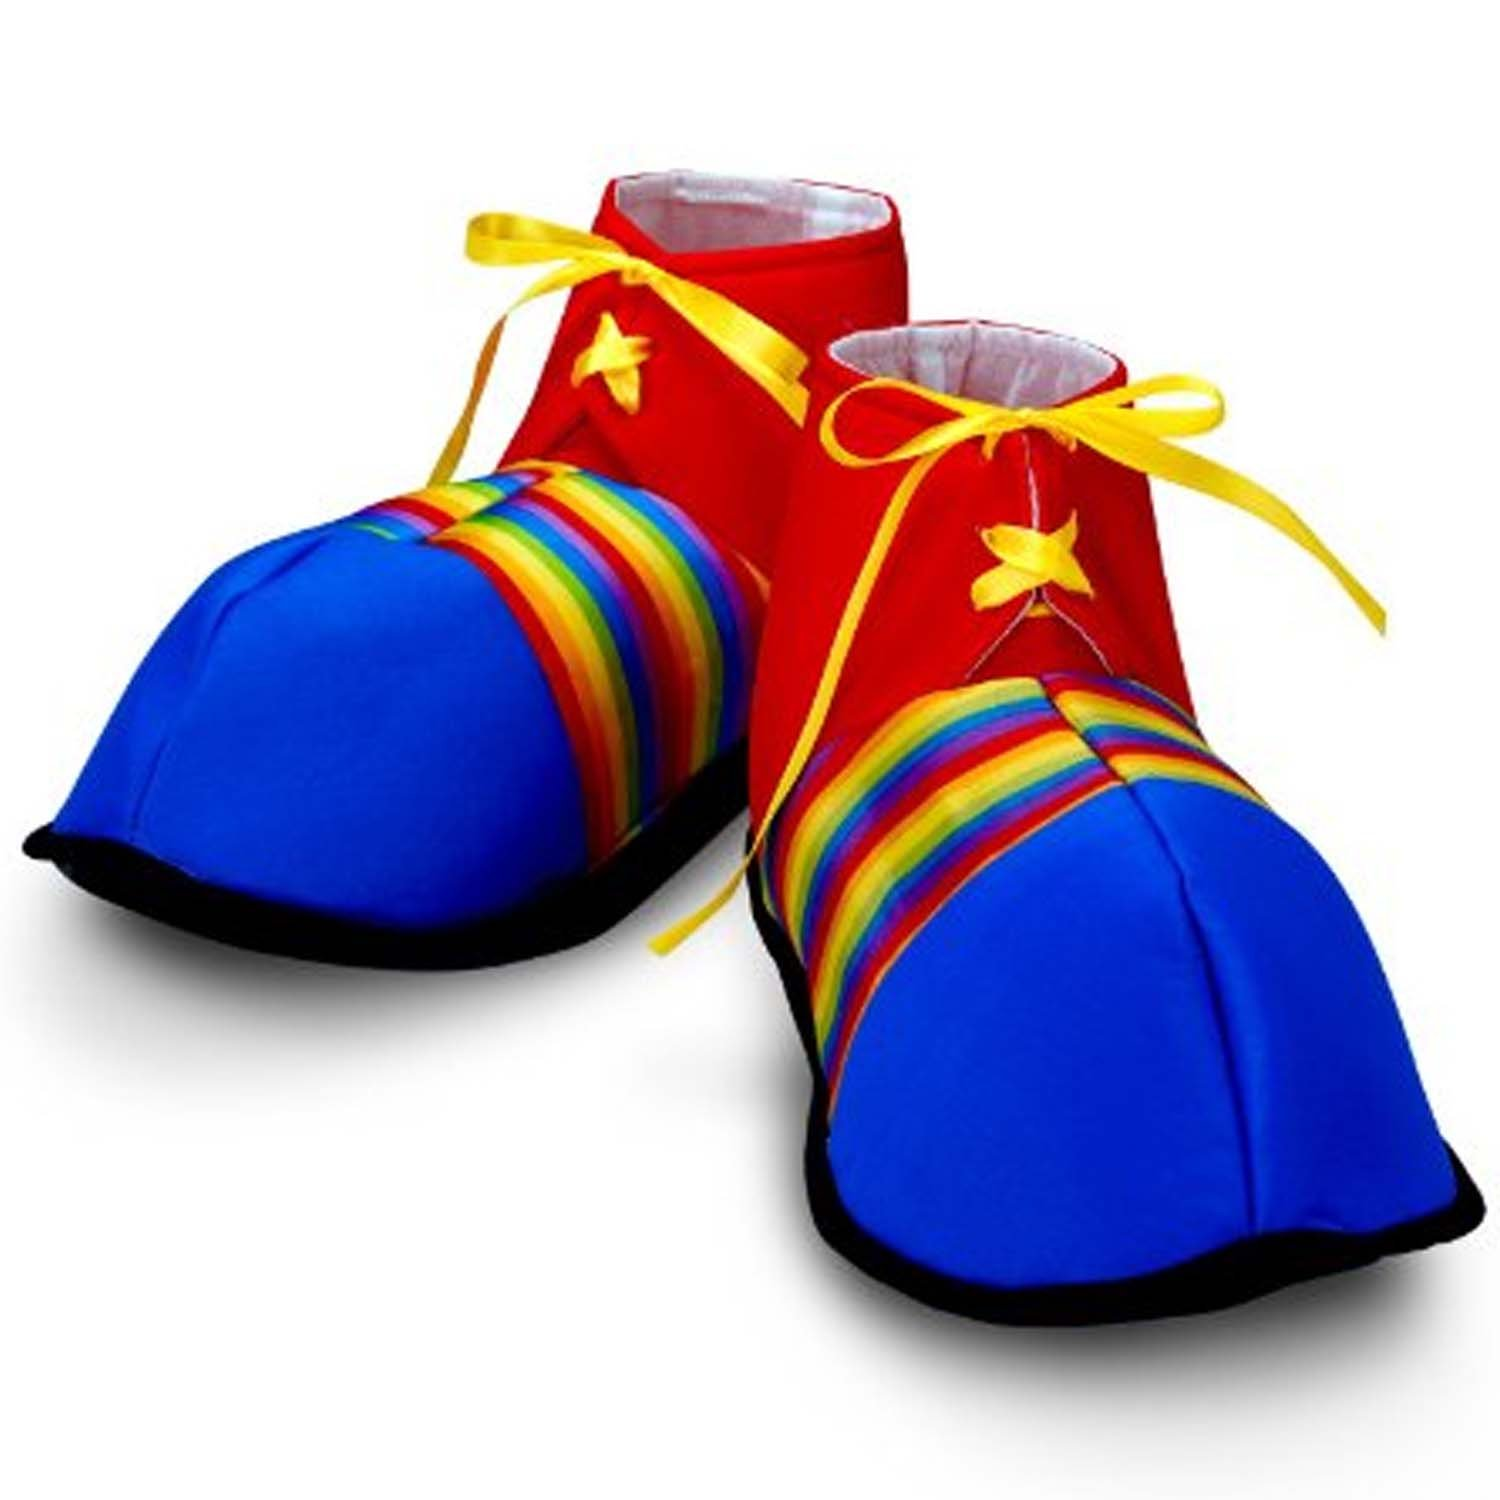 Jumbo Clown Shoes Rainbow Stripes Halloween Costume Fun Express